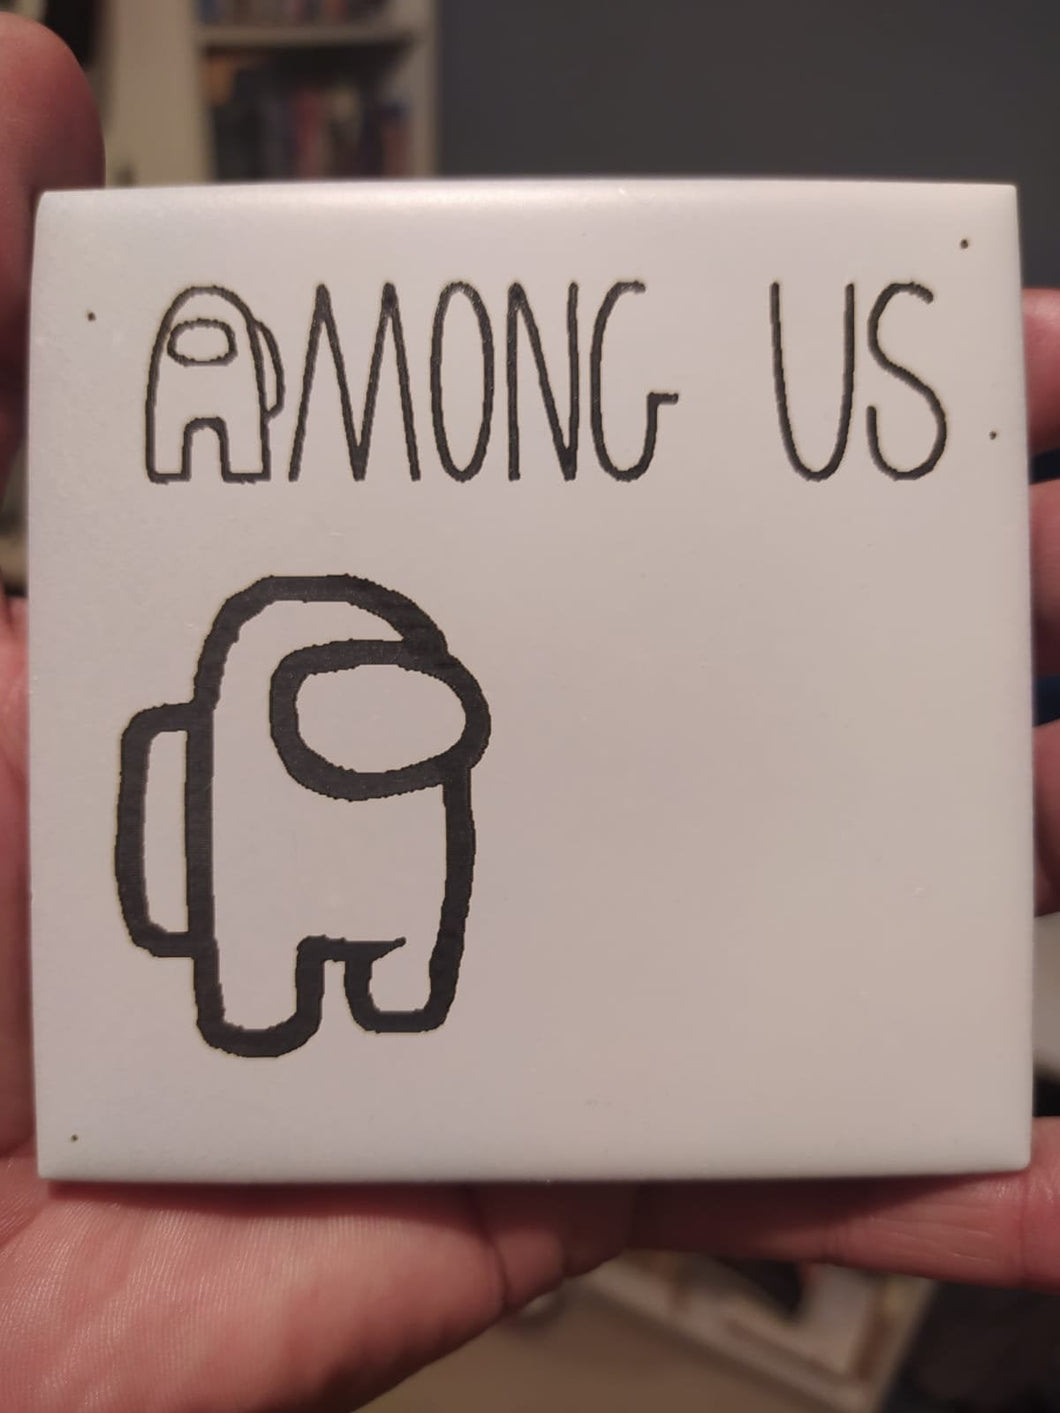 Among us Game-Nerd, laser engraved Ceramic Coaster